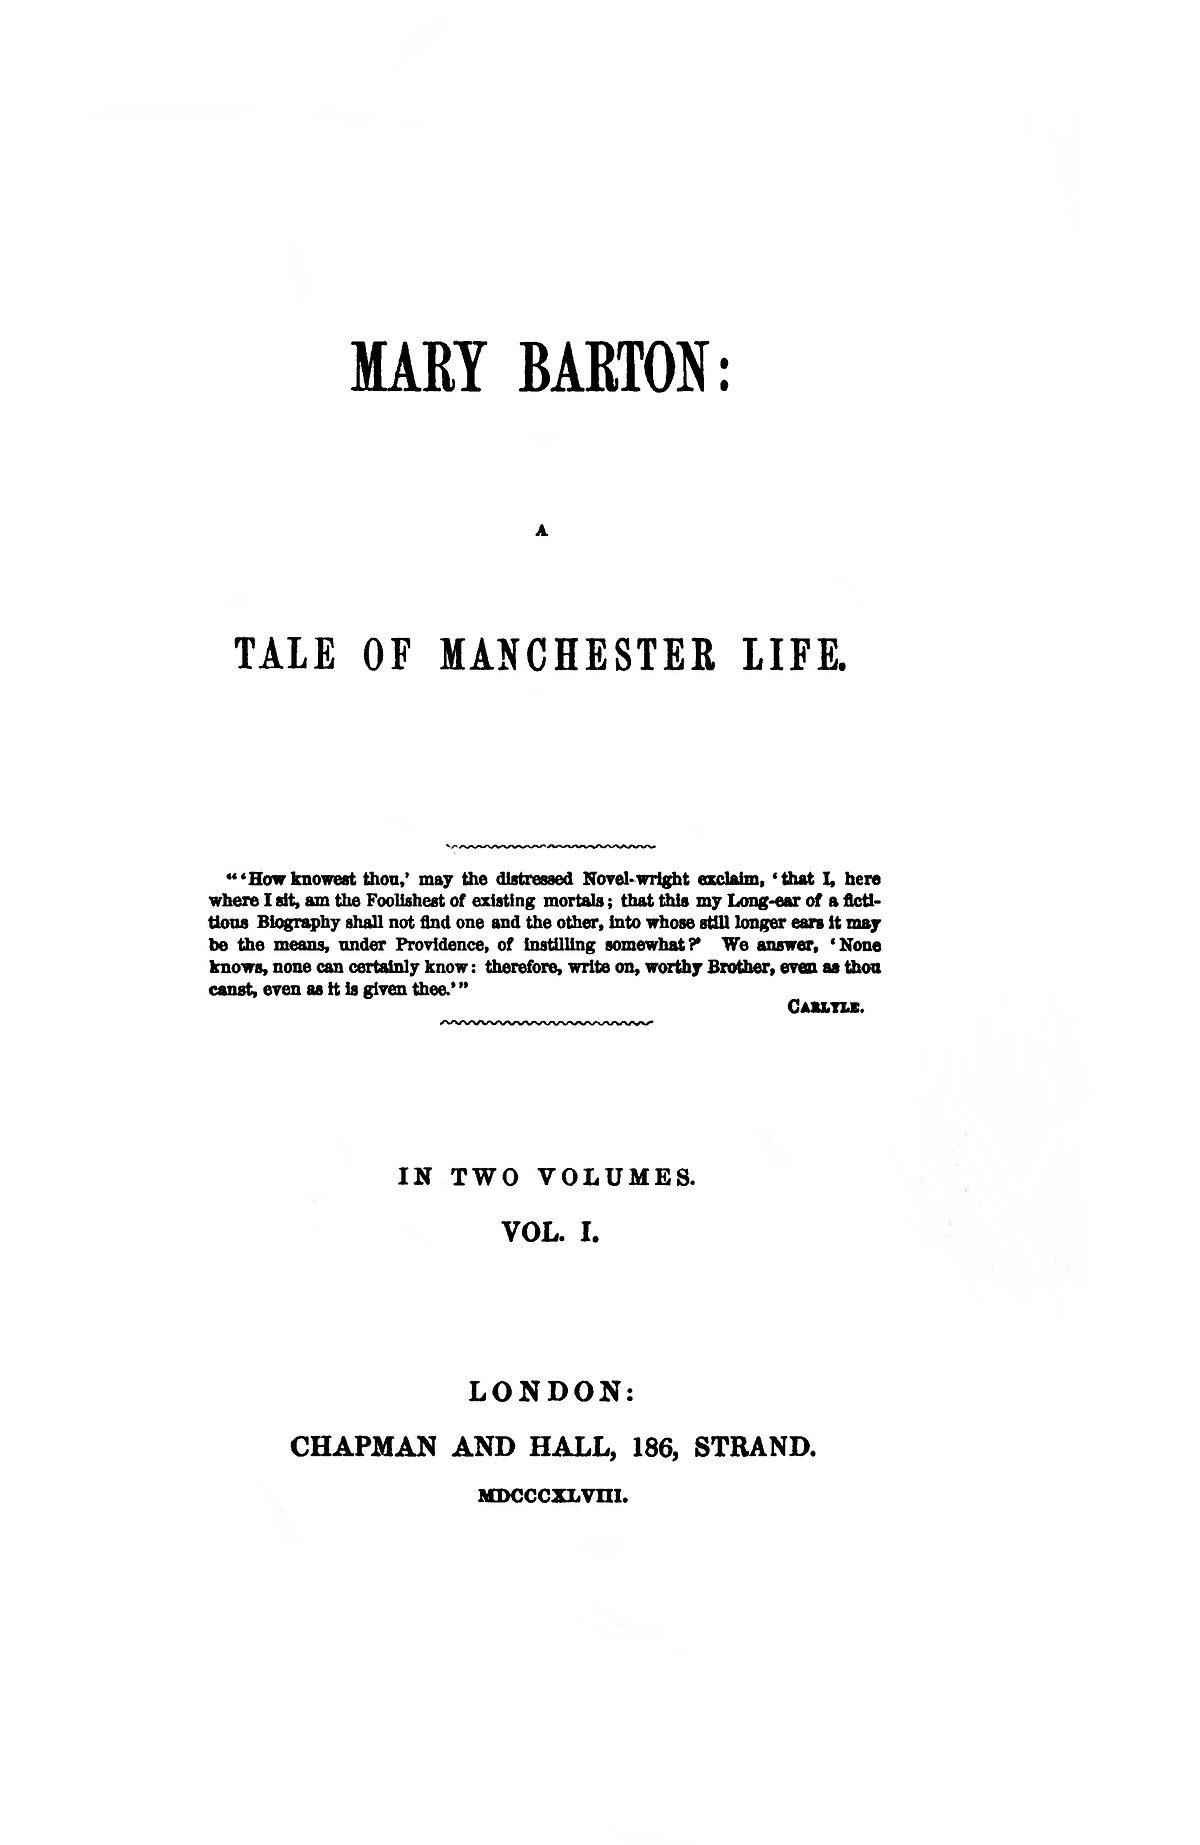 an analysis of the first chapter of mary barton a tale of manchester life by elizabeth gaskell Partly as a response to his death, mrs gaskell – she is still often known by the married title, although some readers now refer to her as elizabeth gaskell – set about writing mary barton, her 'tale of manchester life' it was published in 1848 to huge acclaim.